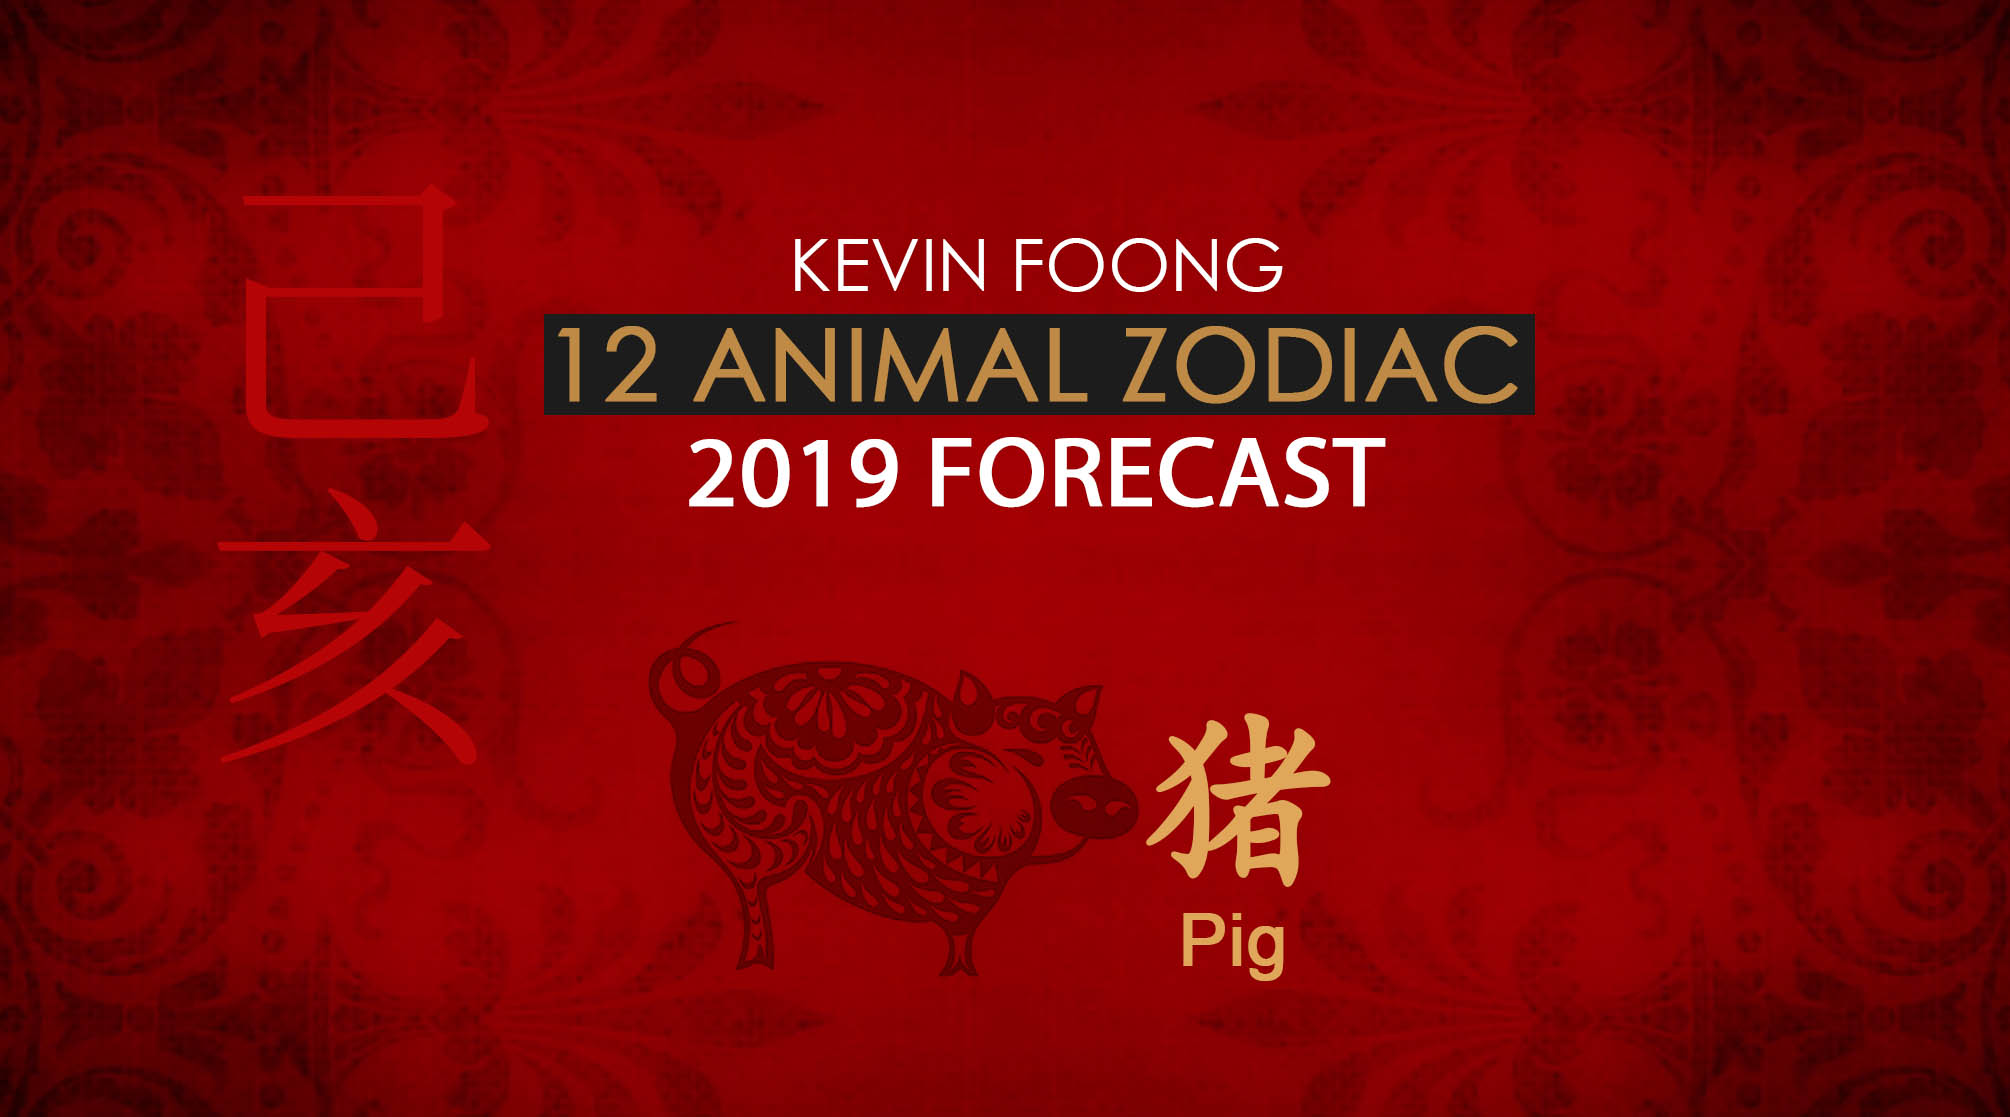 Here's your Chinese zodiac forecast for 2019 Year of the Pig